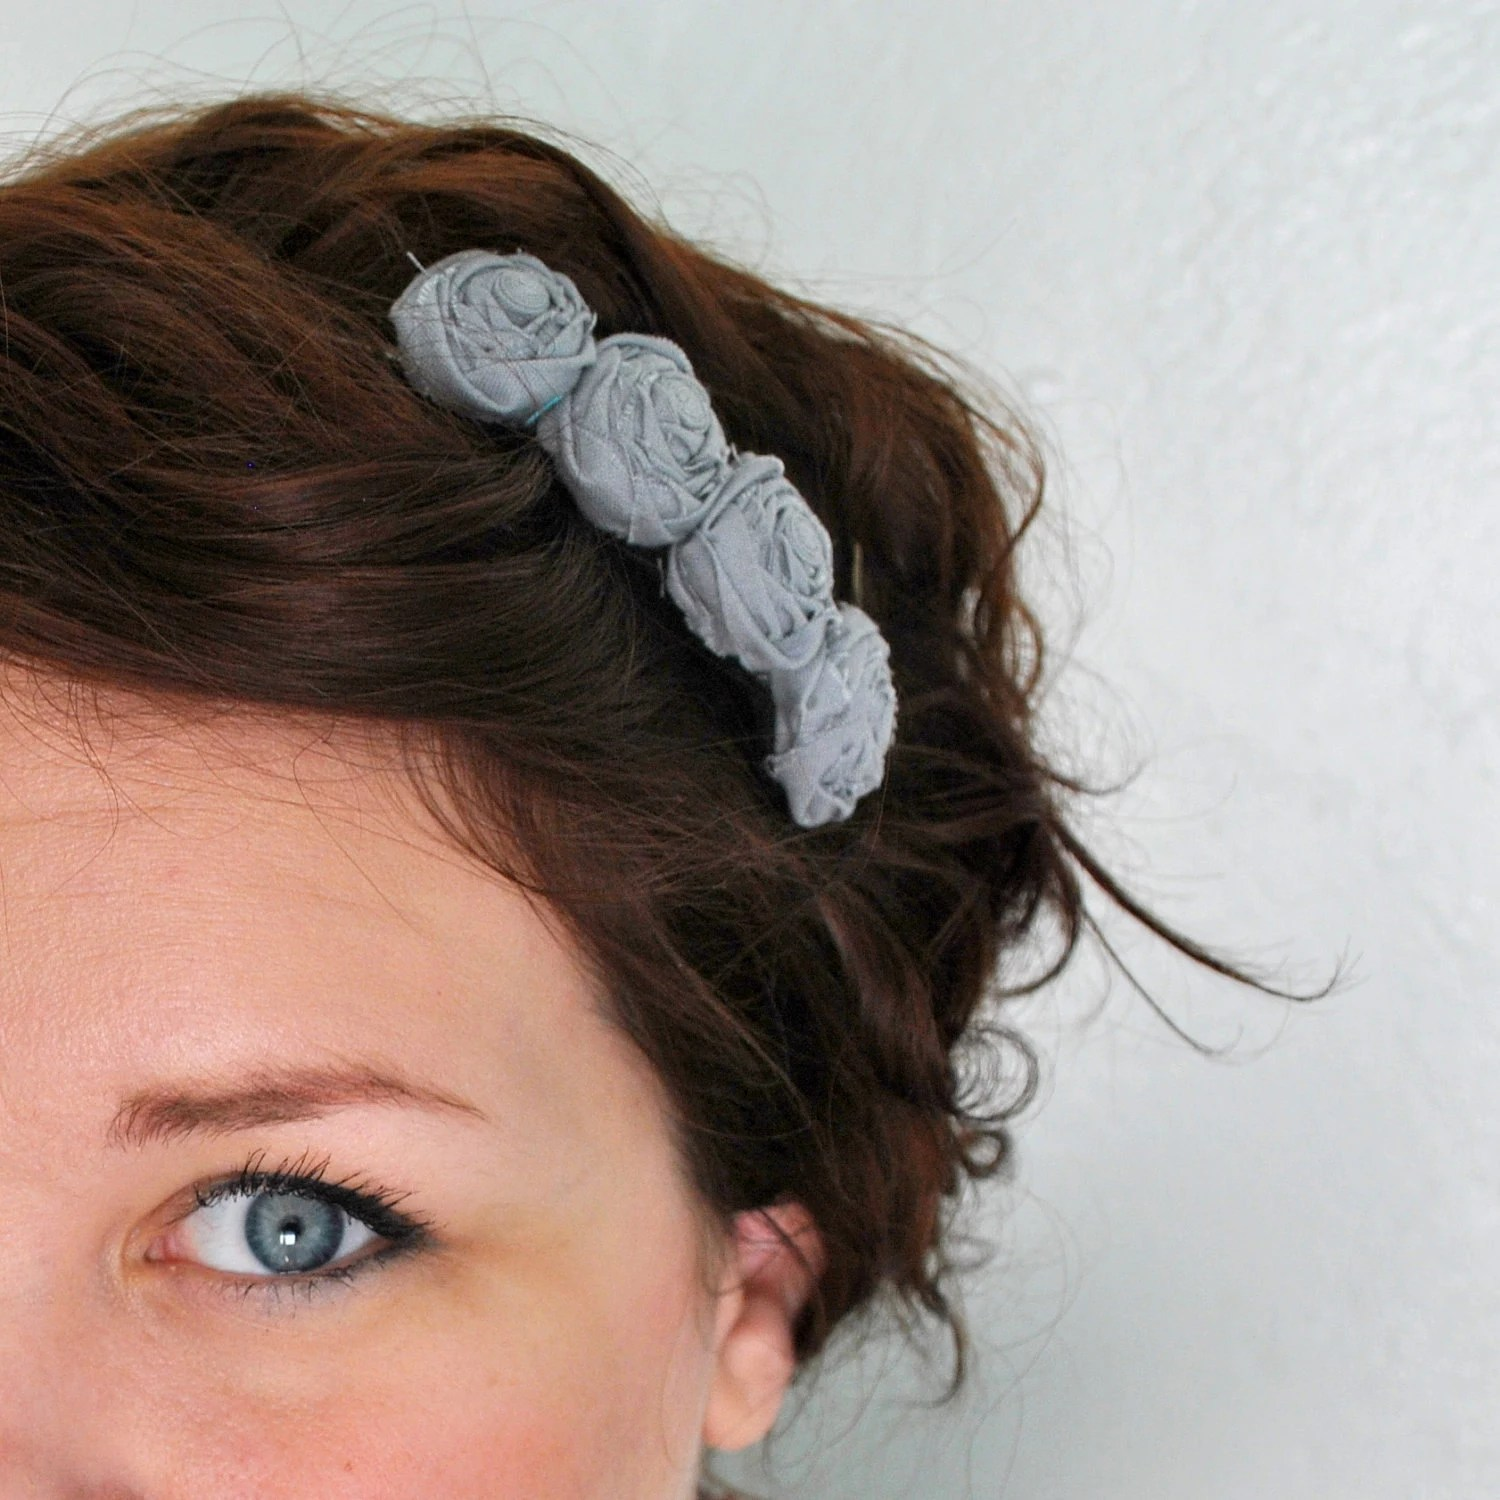 Rosette Headband - Small Rosettes - Choose your Color - Christmas in July christmasinjuly sale - FoldingChairDesigns